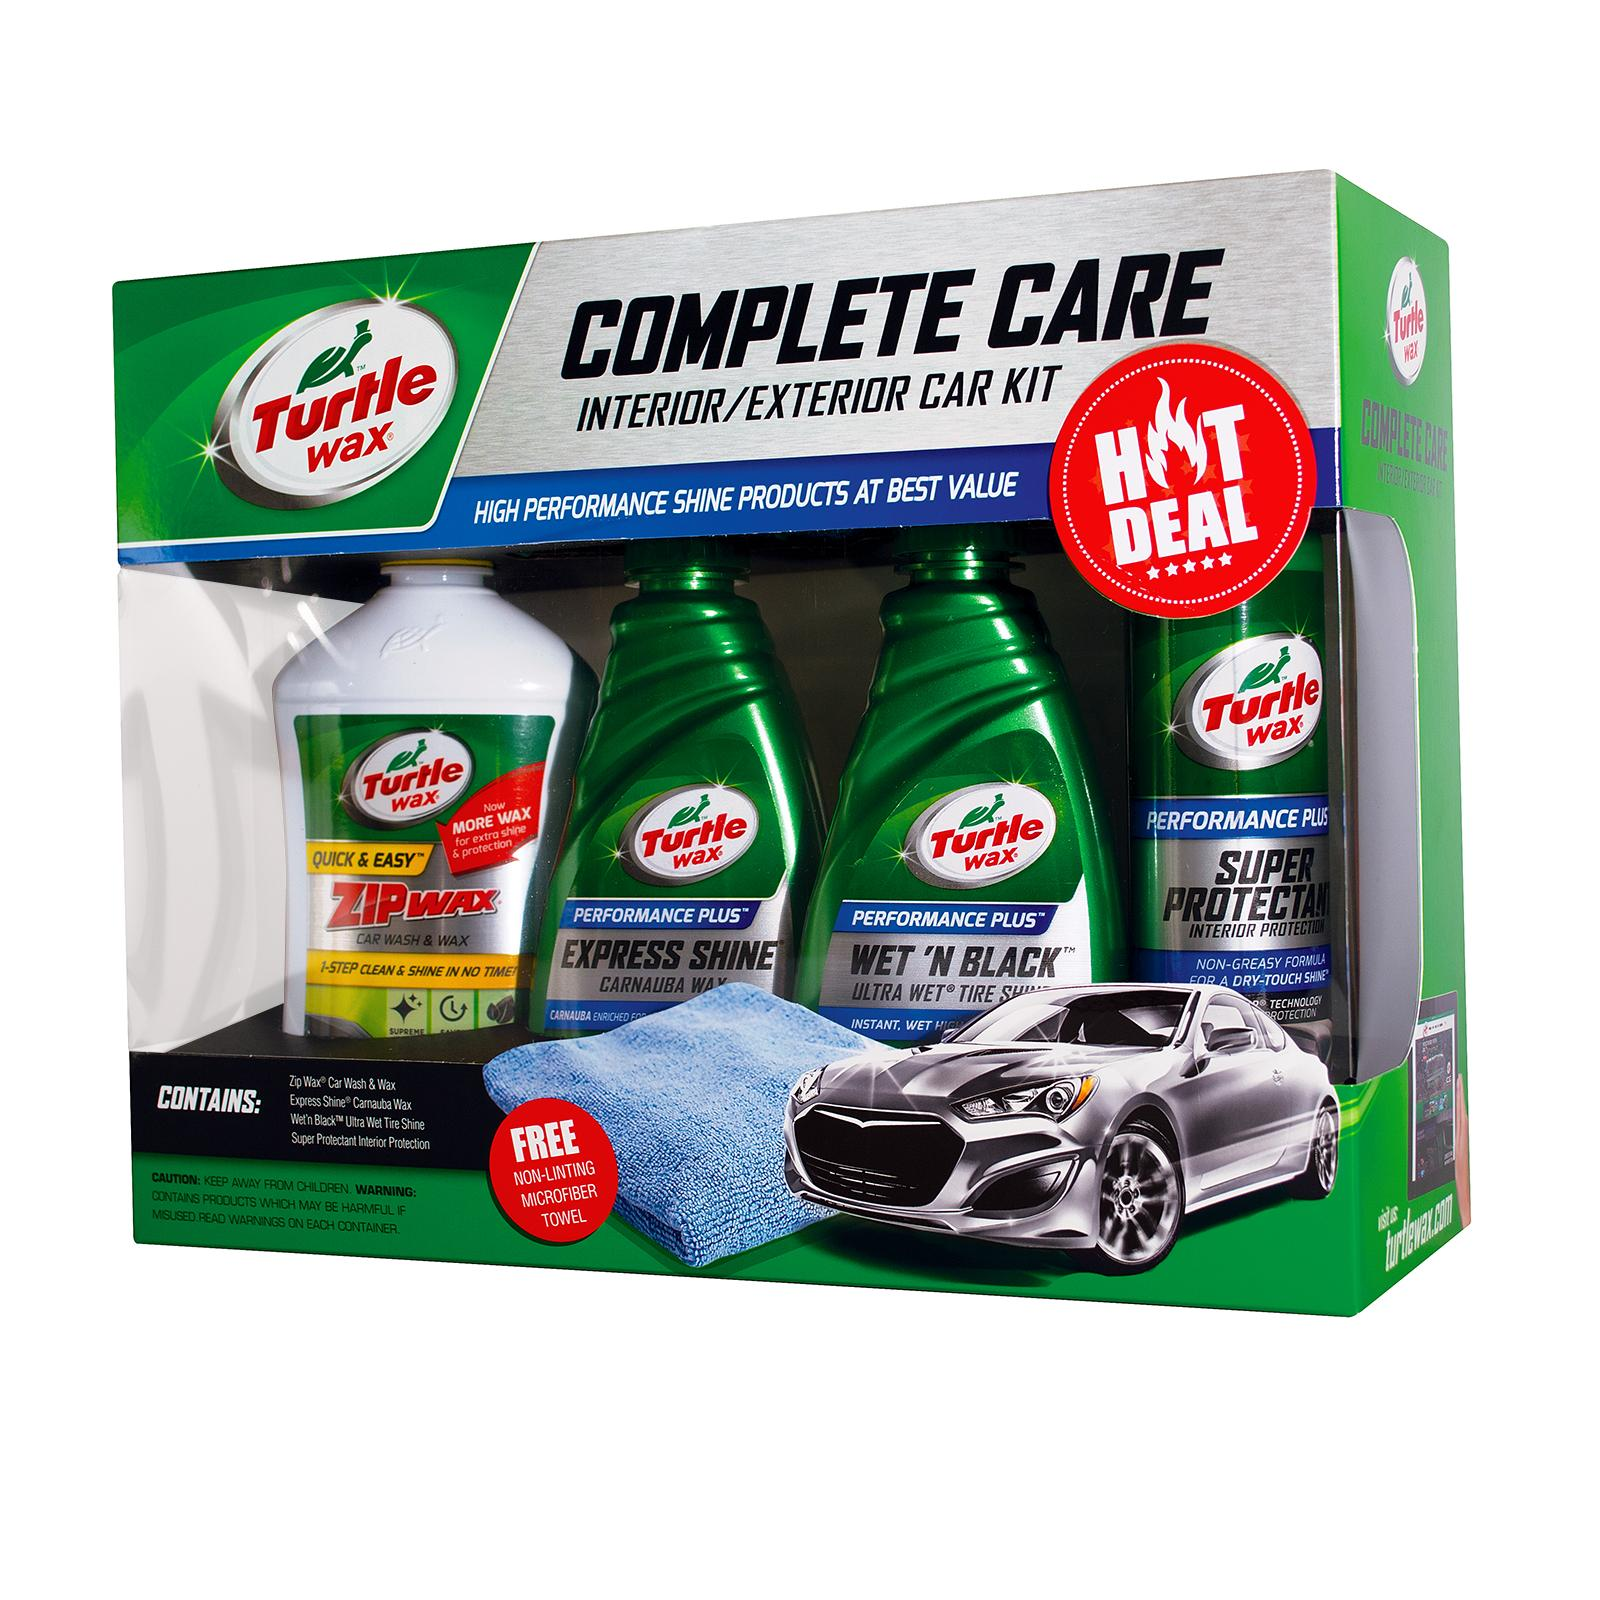 * COMPLETE CARE KIT